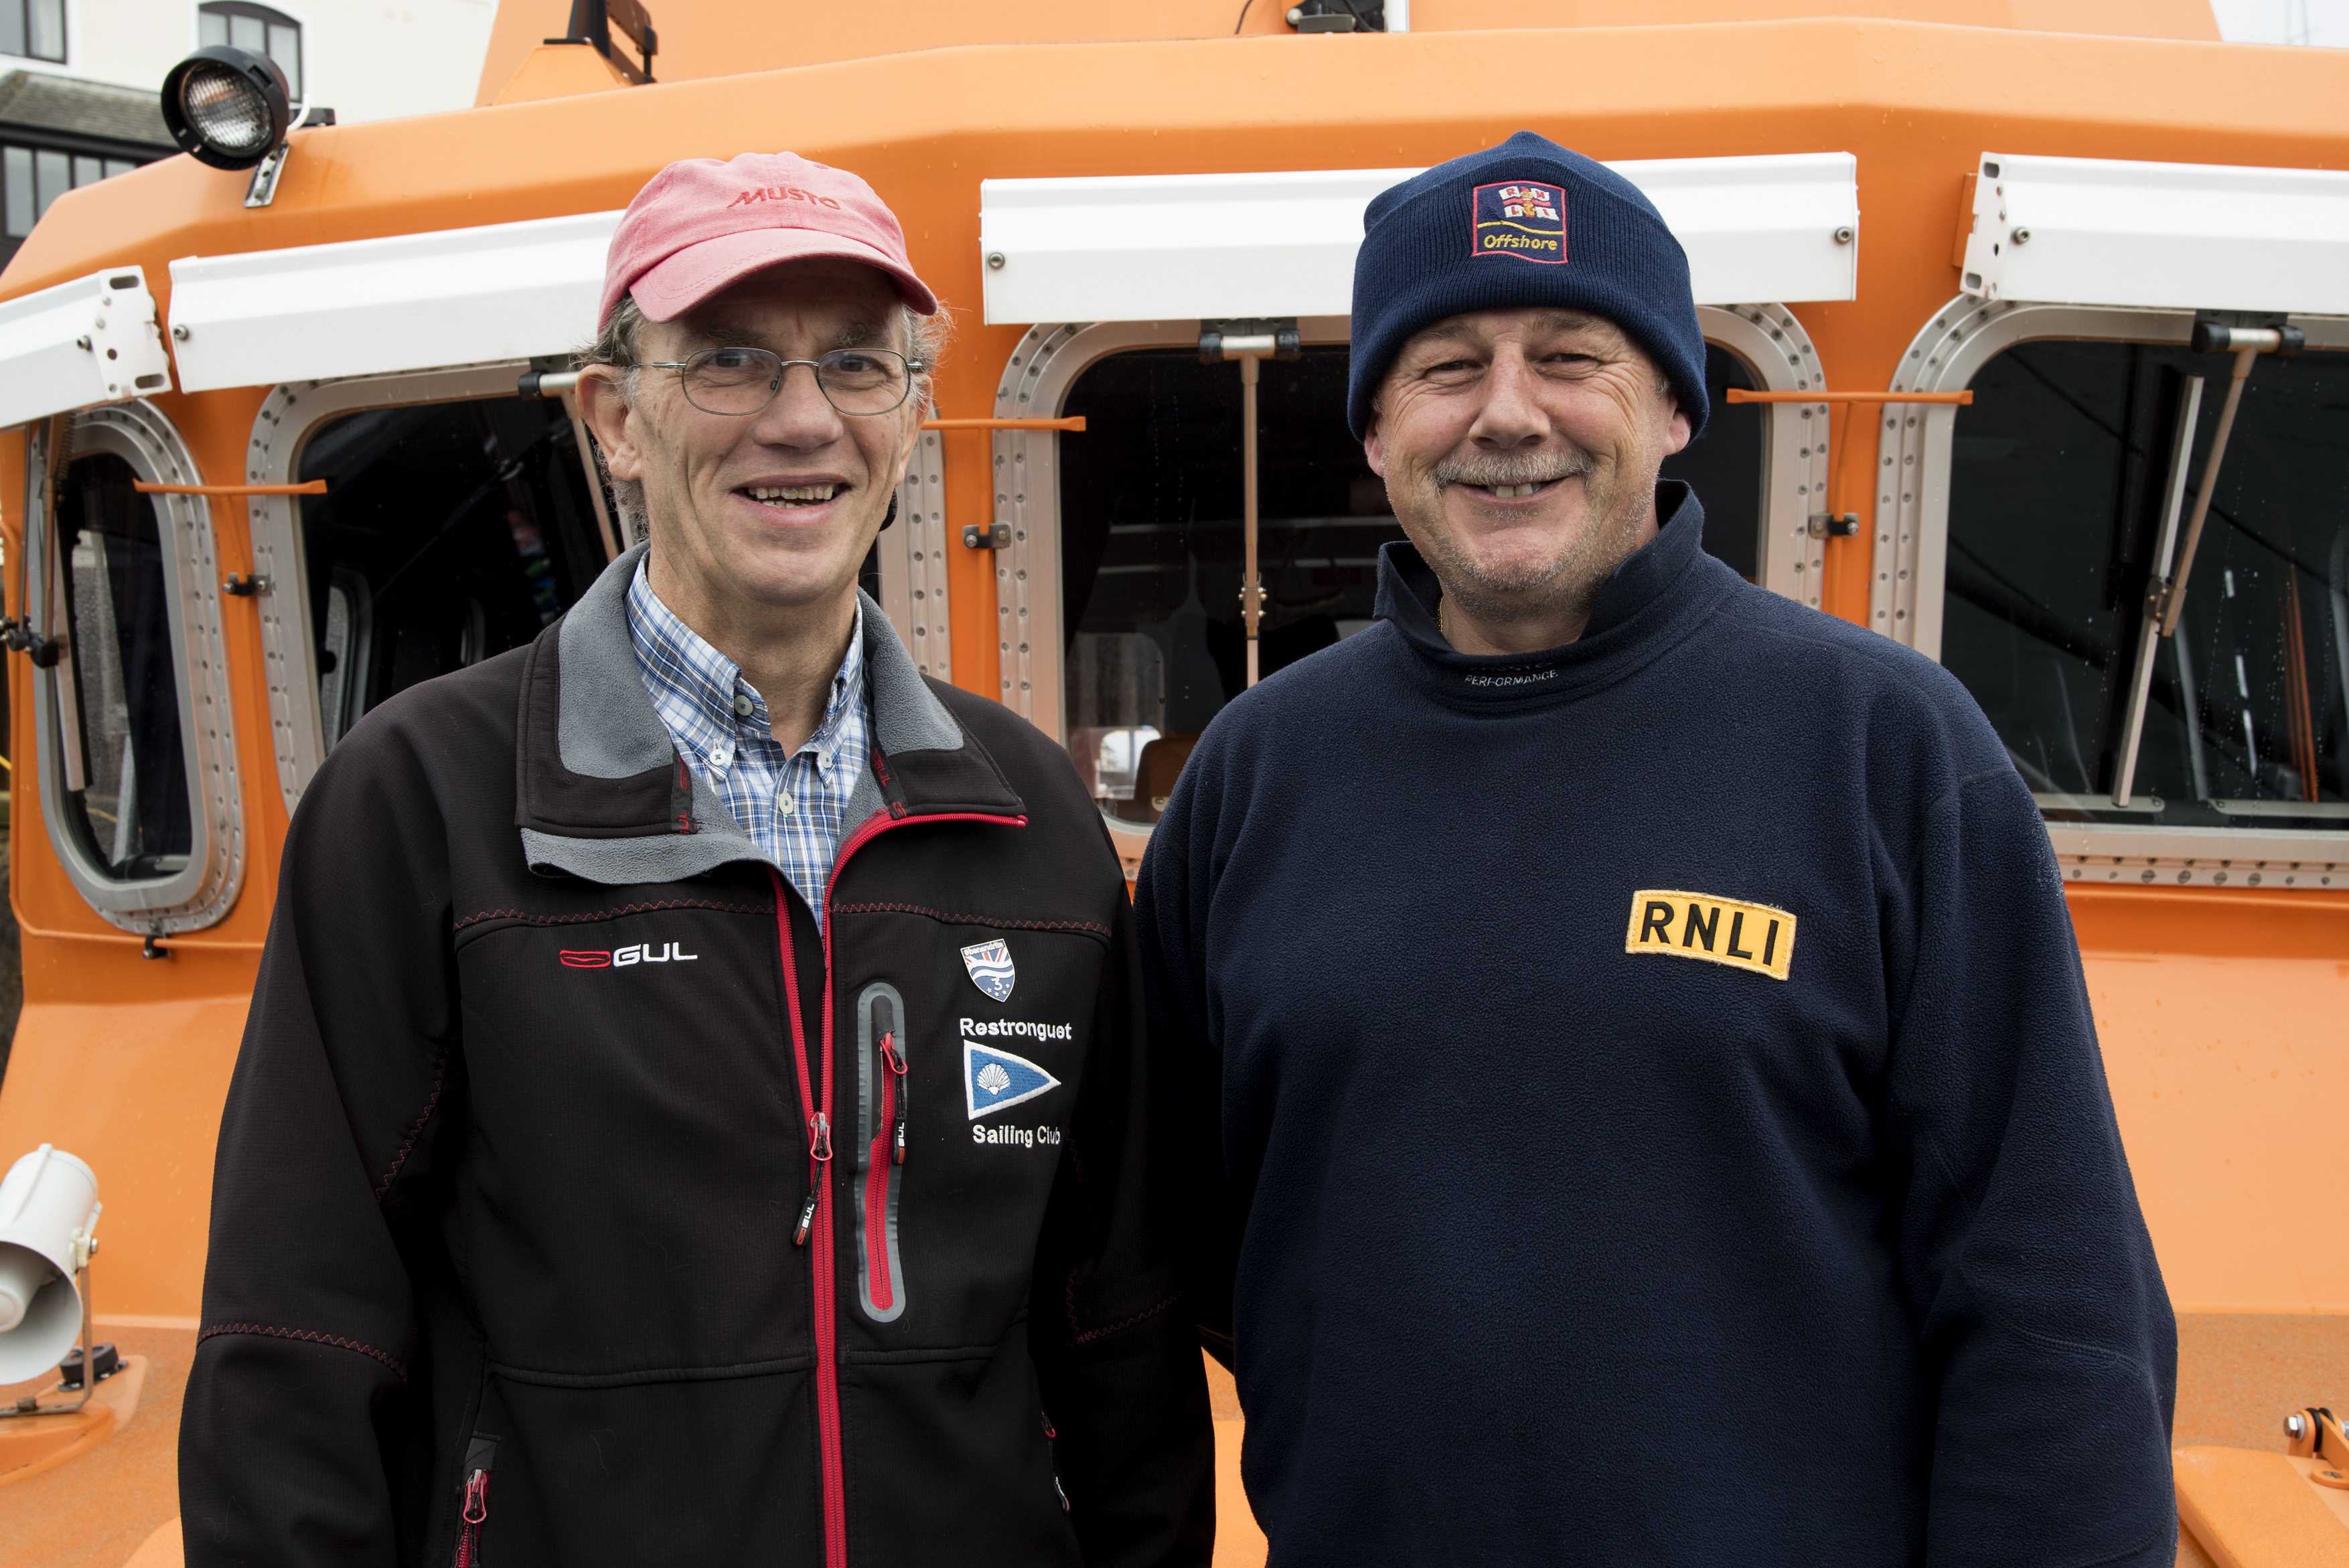 Henry Metcalfe, Restronguet Sailing Club Commodore with Falmouth RNLI Coxswain Jonathon Blakeston on board the station's Severn class all-weather lifeboat Richard Cox Scott